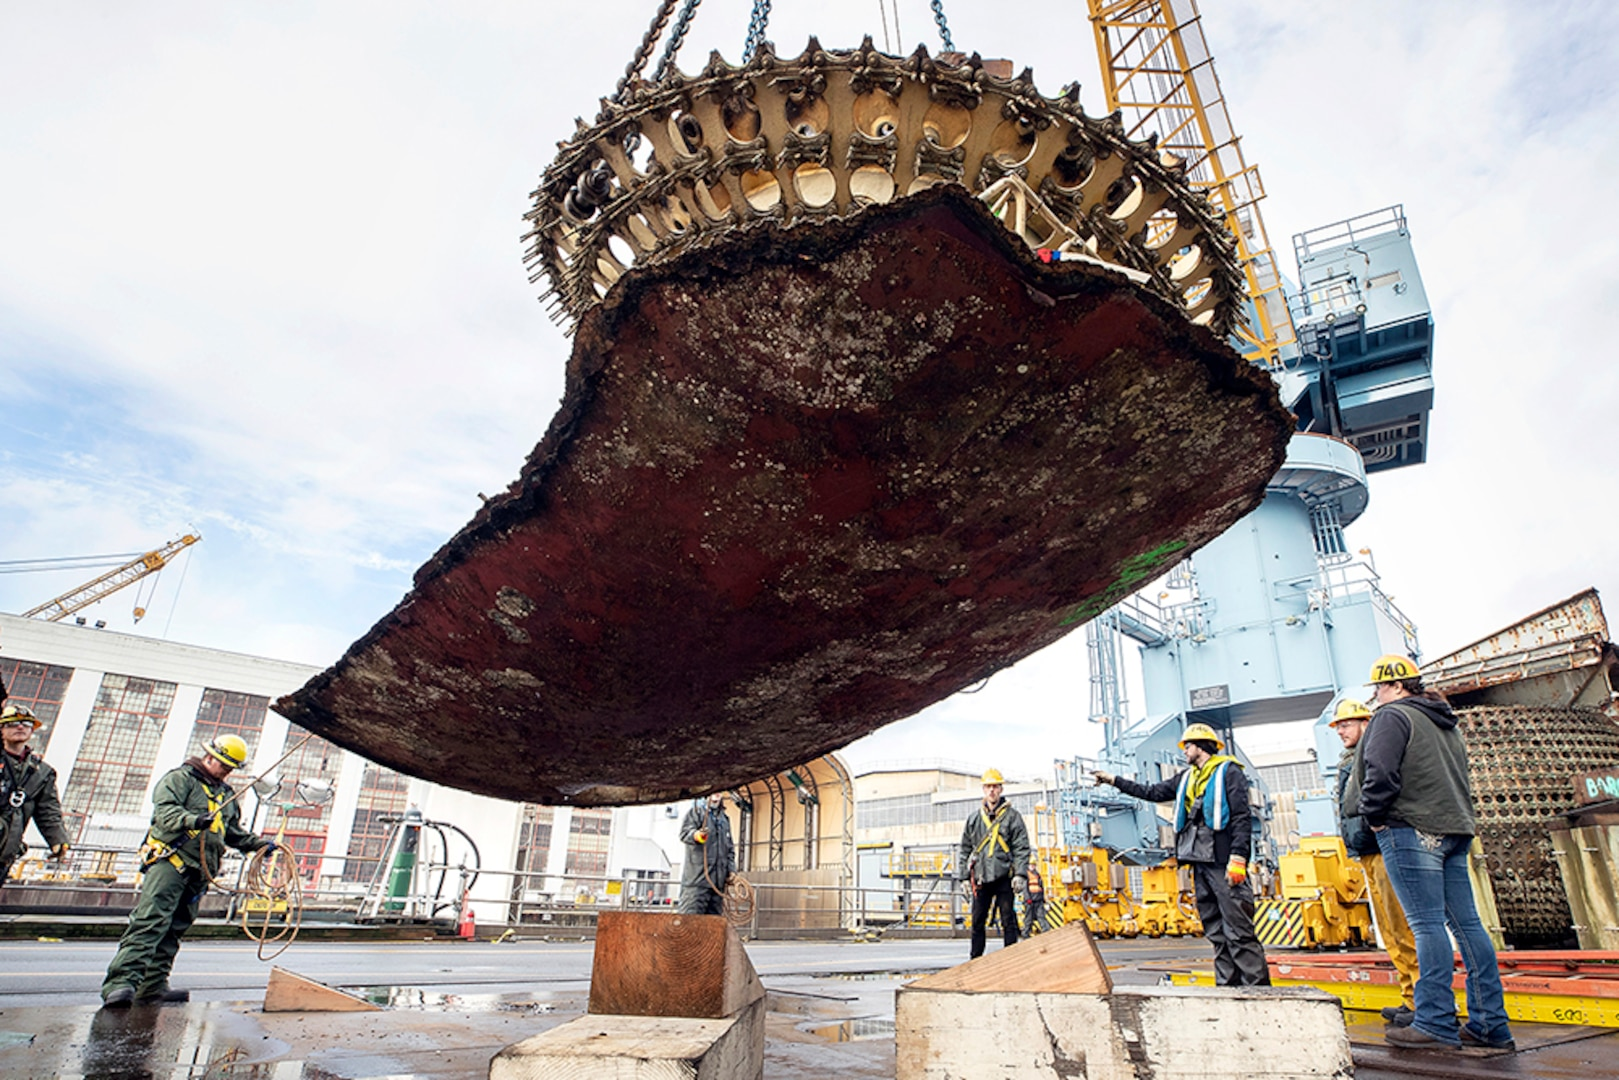 Riggers watch as a crane lifts a massive piece of submarine hull onto a barge for disposal.